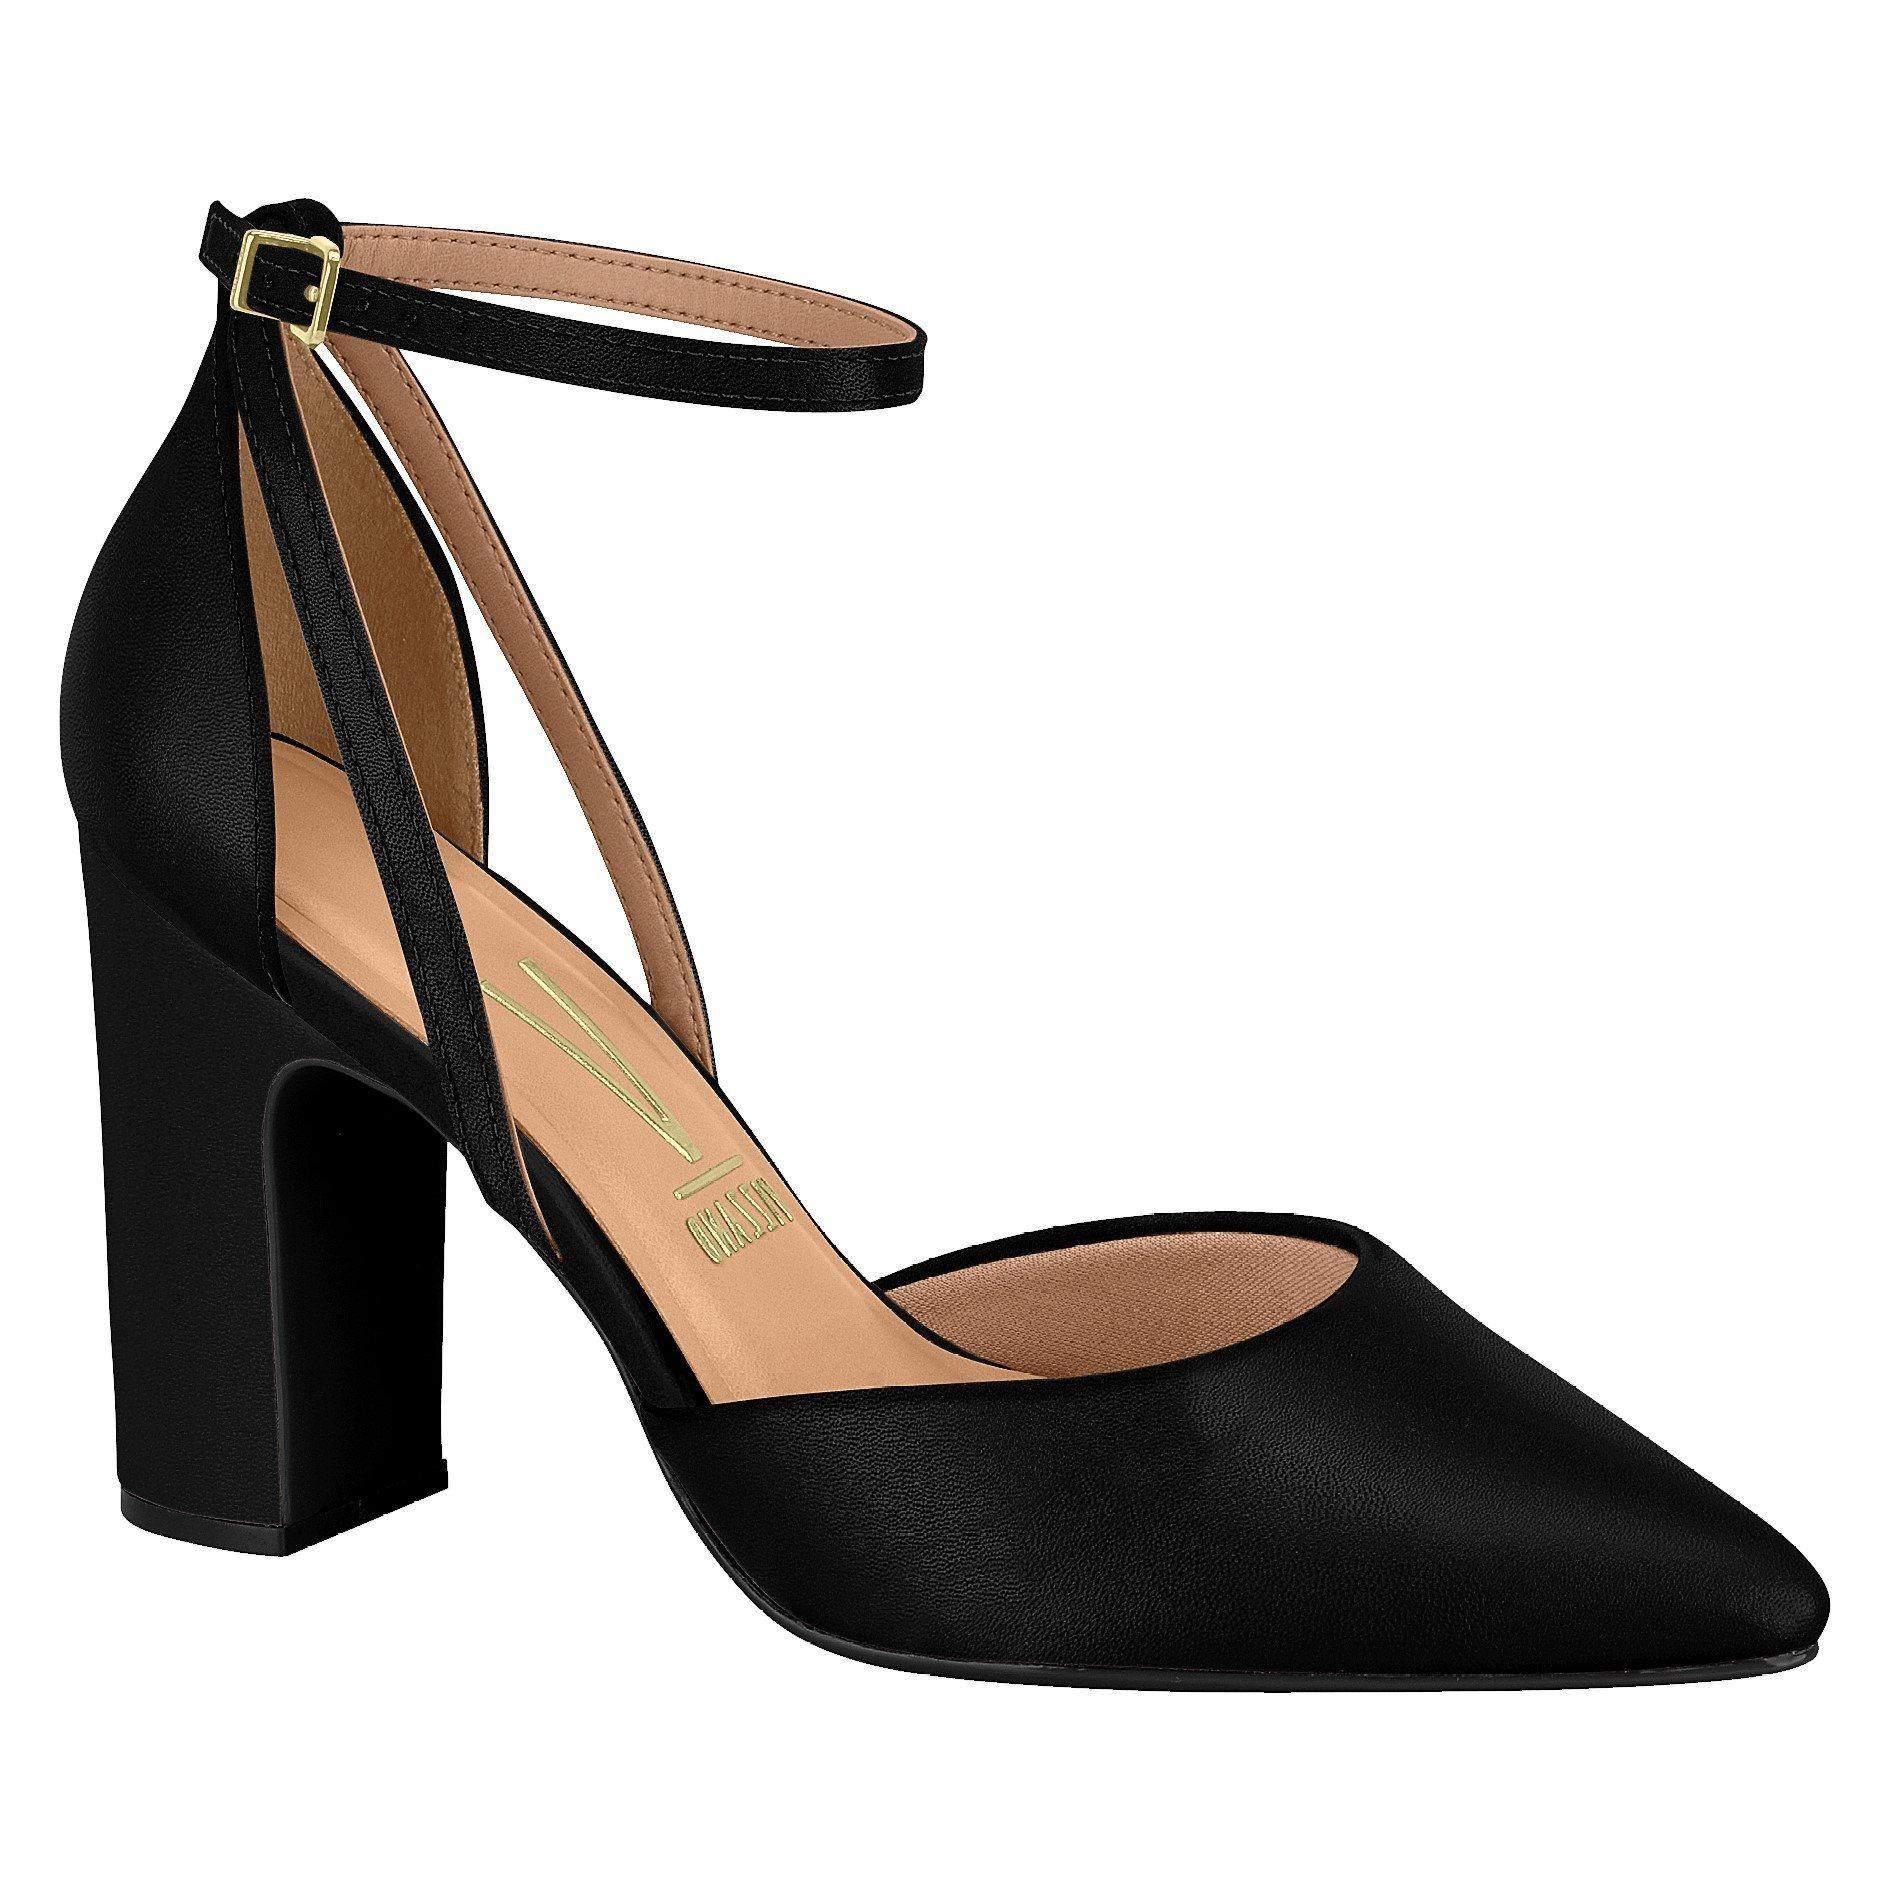 Vizzano 1285-421 Block Heel Pump in Black Napa